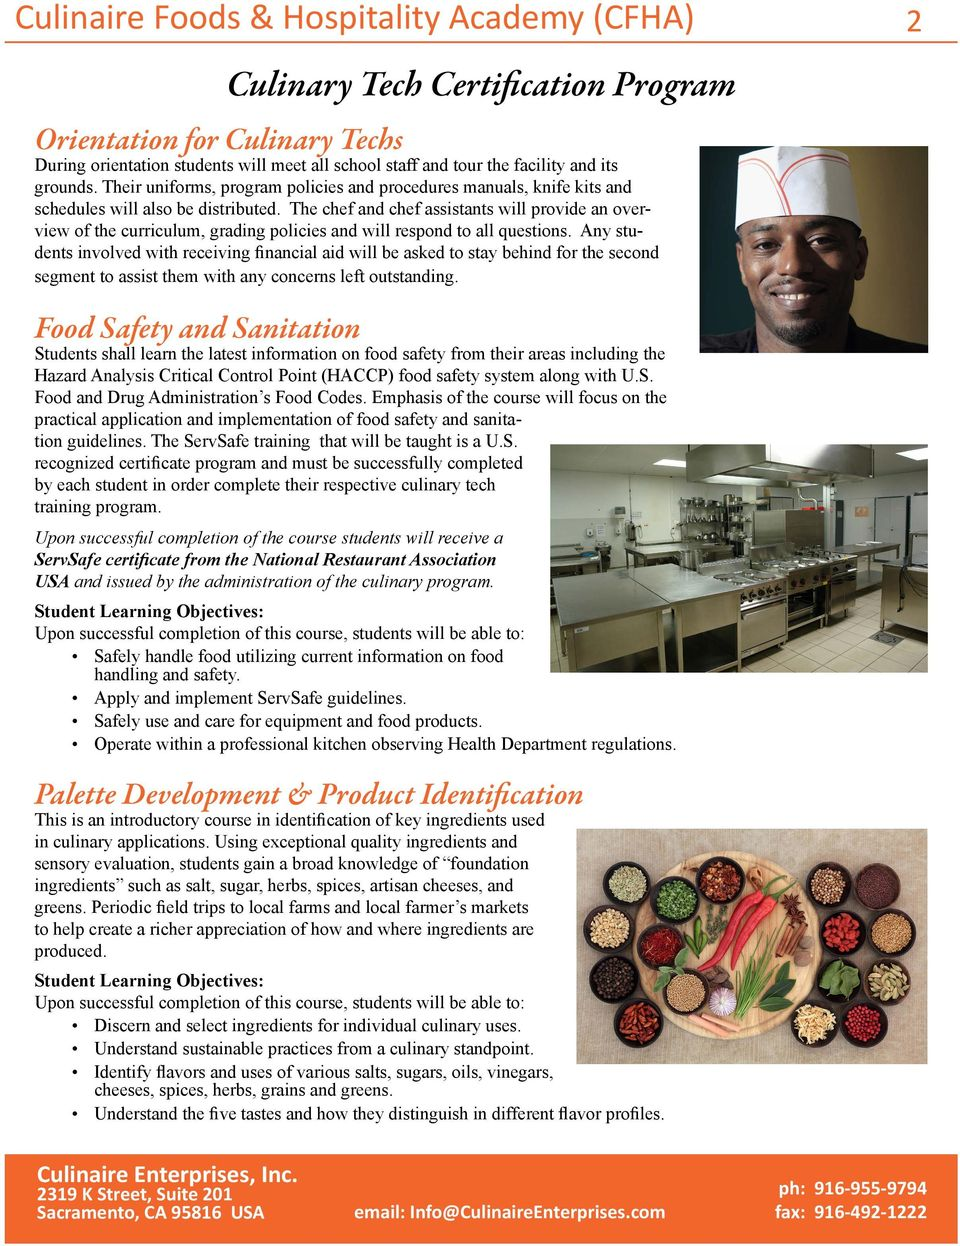 The chef and chef assistants will provide an overview of the curriculum, grading policies and will respond to all questions.